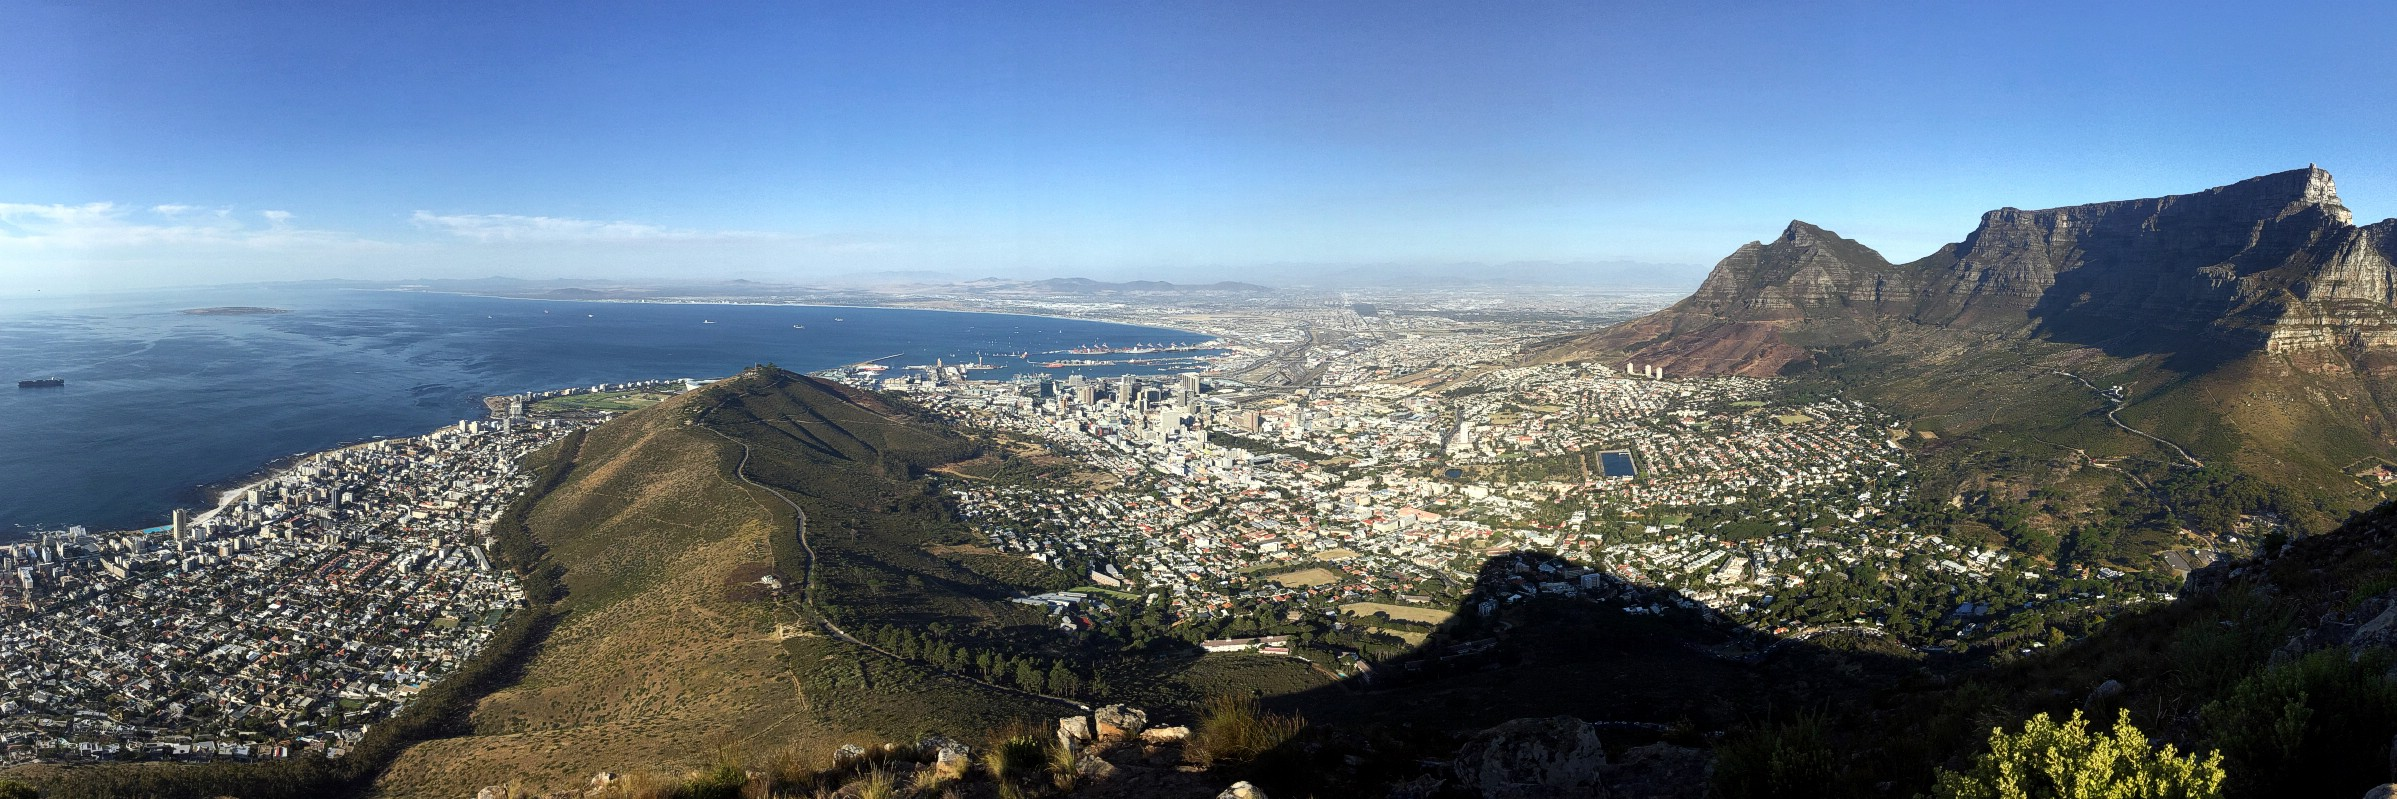 A panorama of (L-R) Table Bay, Signal Hill, Cape Town & Table Mountain as seen from the top of Lion's Head, Western Cape, South Africa. February 22, 2017.